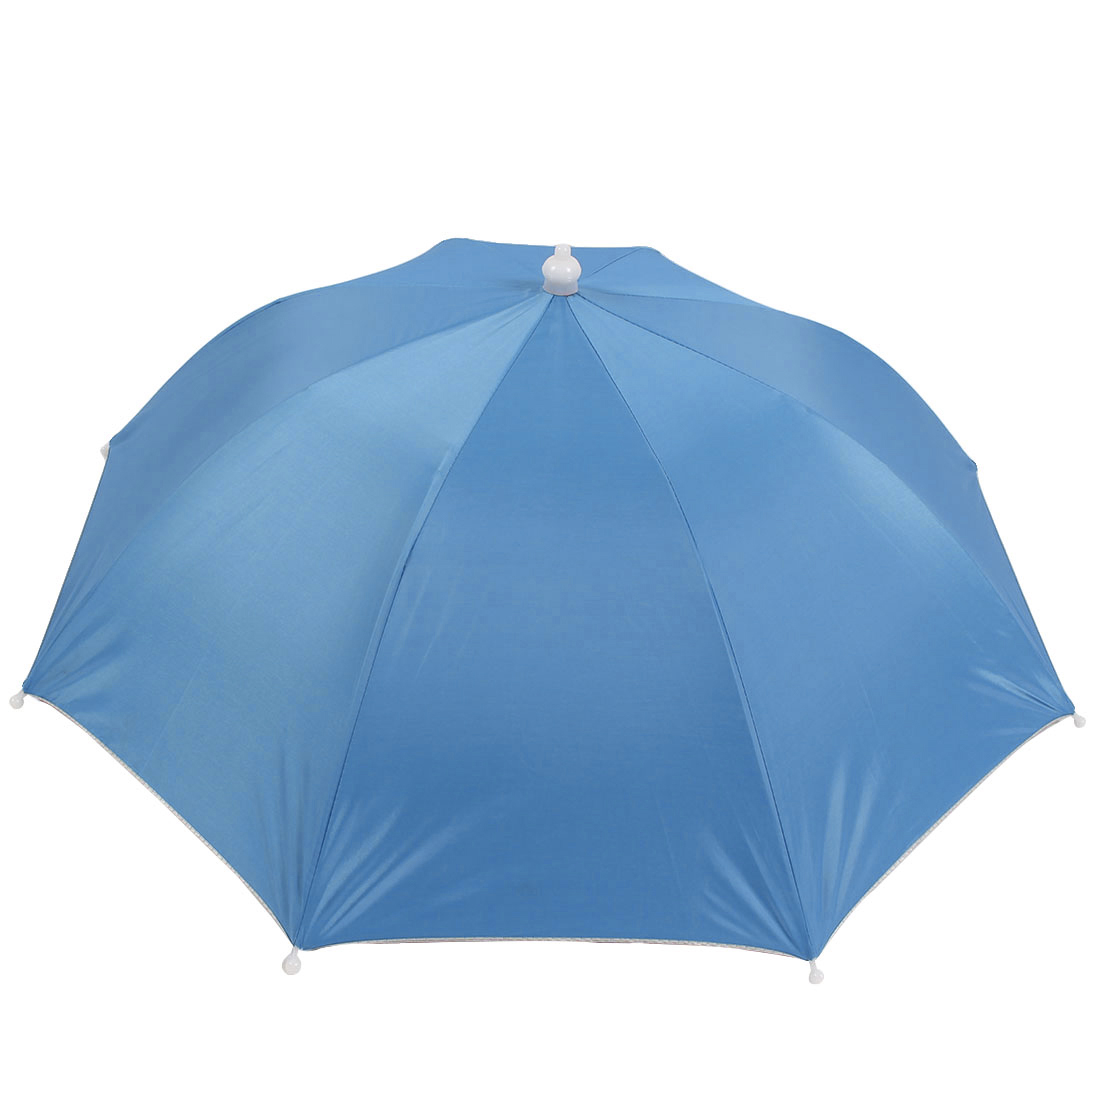 "Fishing Elastic Head Band 17"" Long Handfree Baby Blue Umbrella Hat"